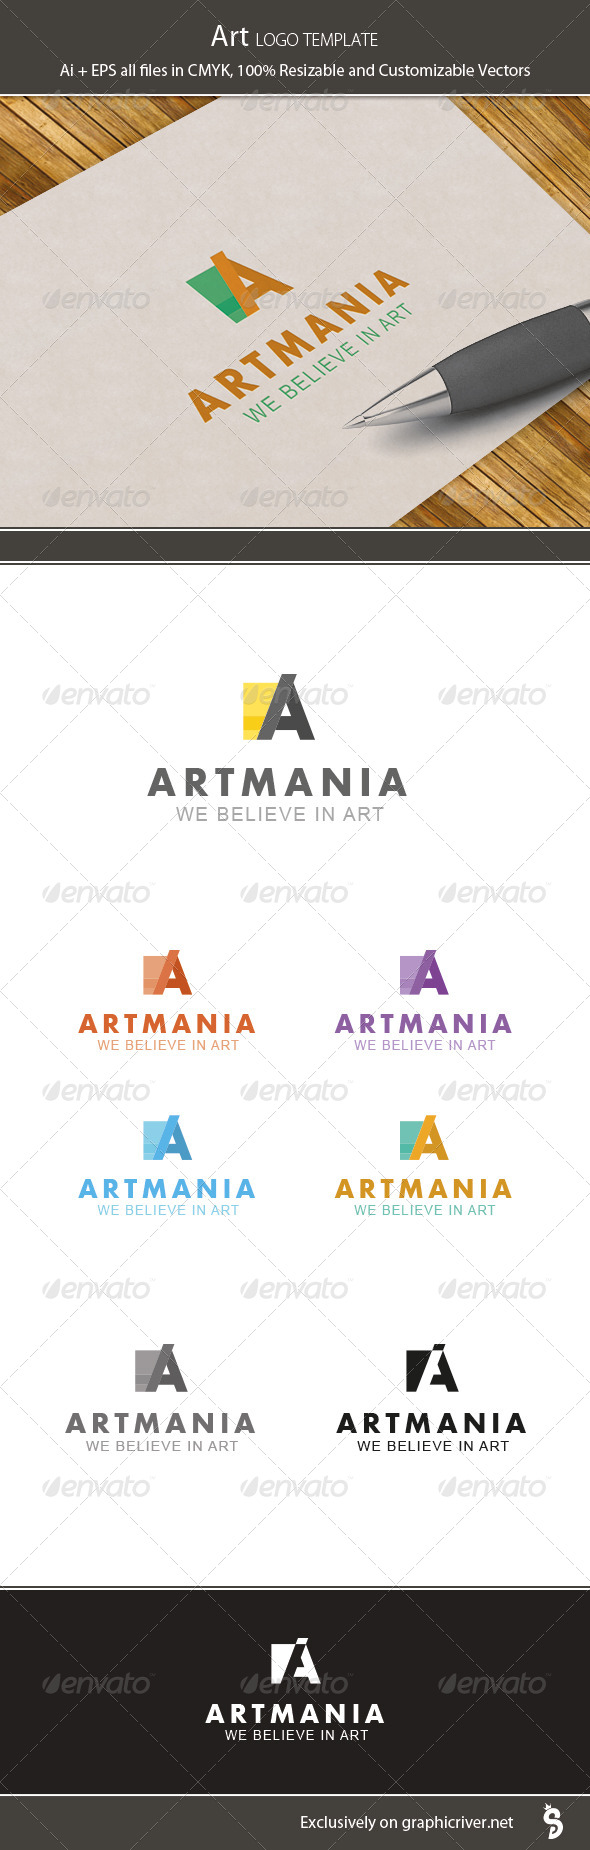 Art Logo Template